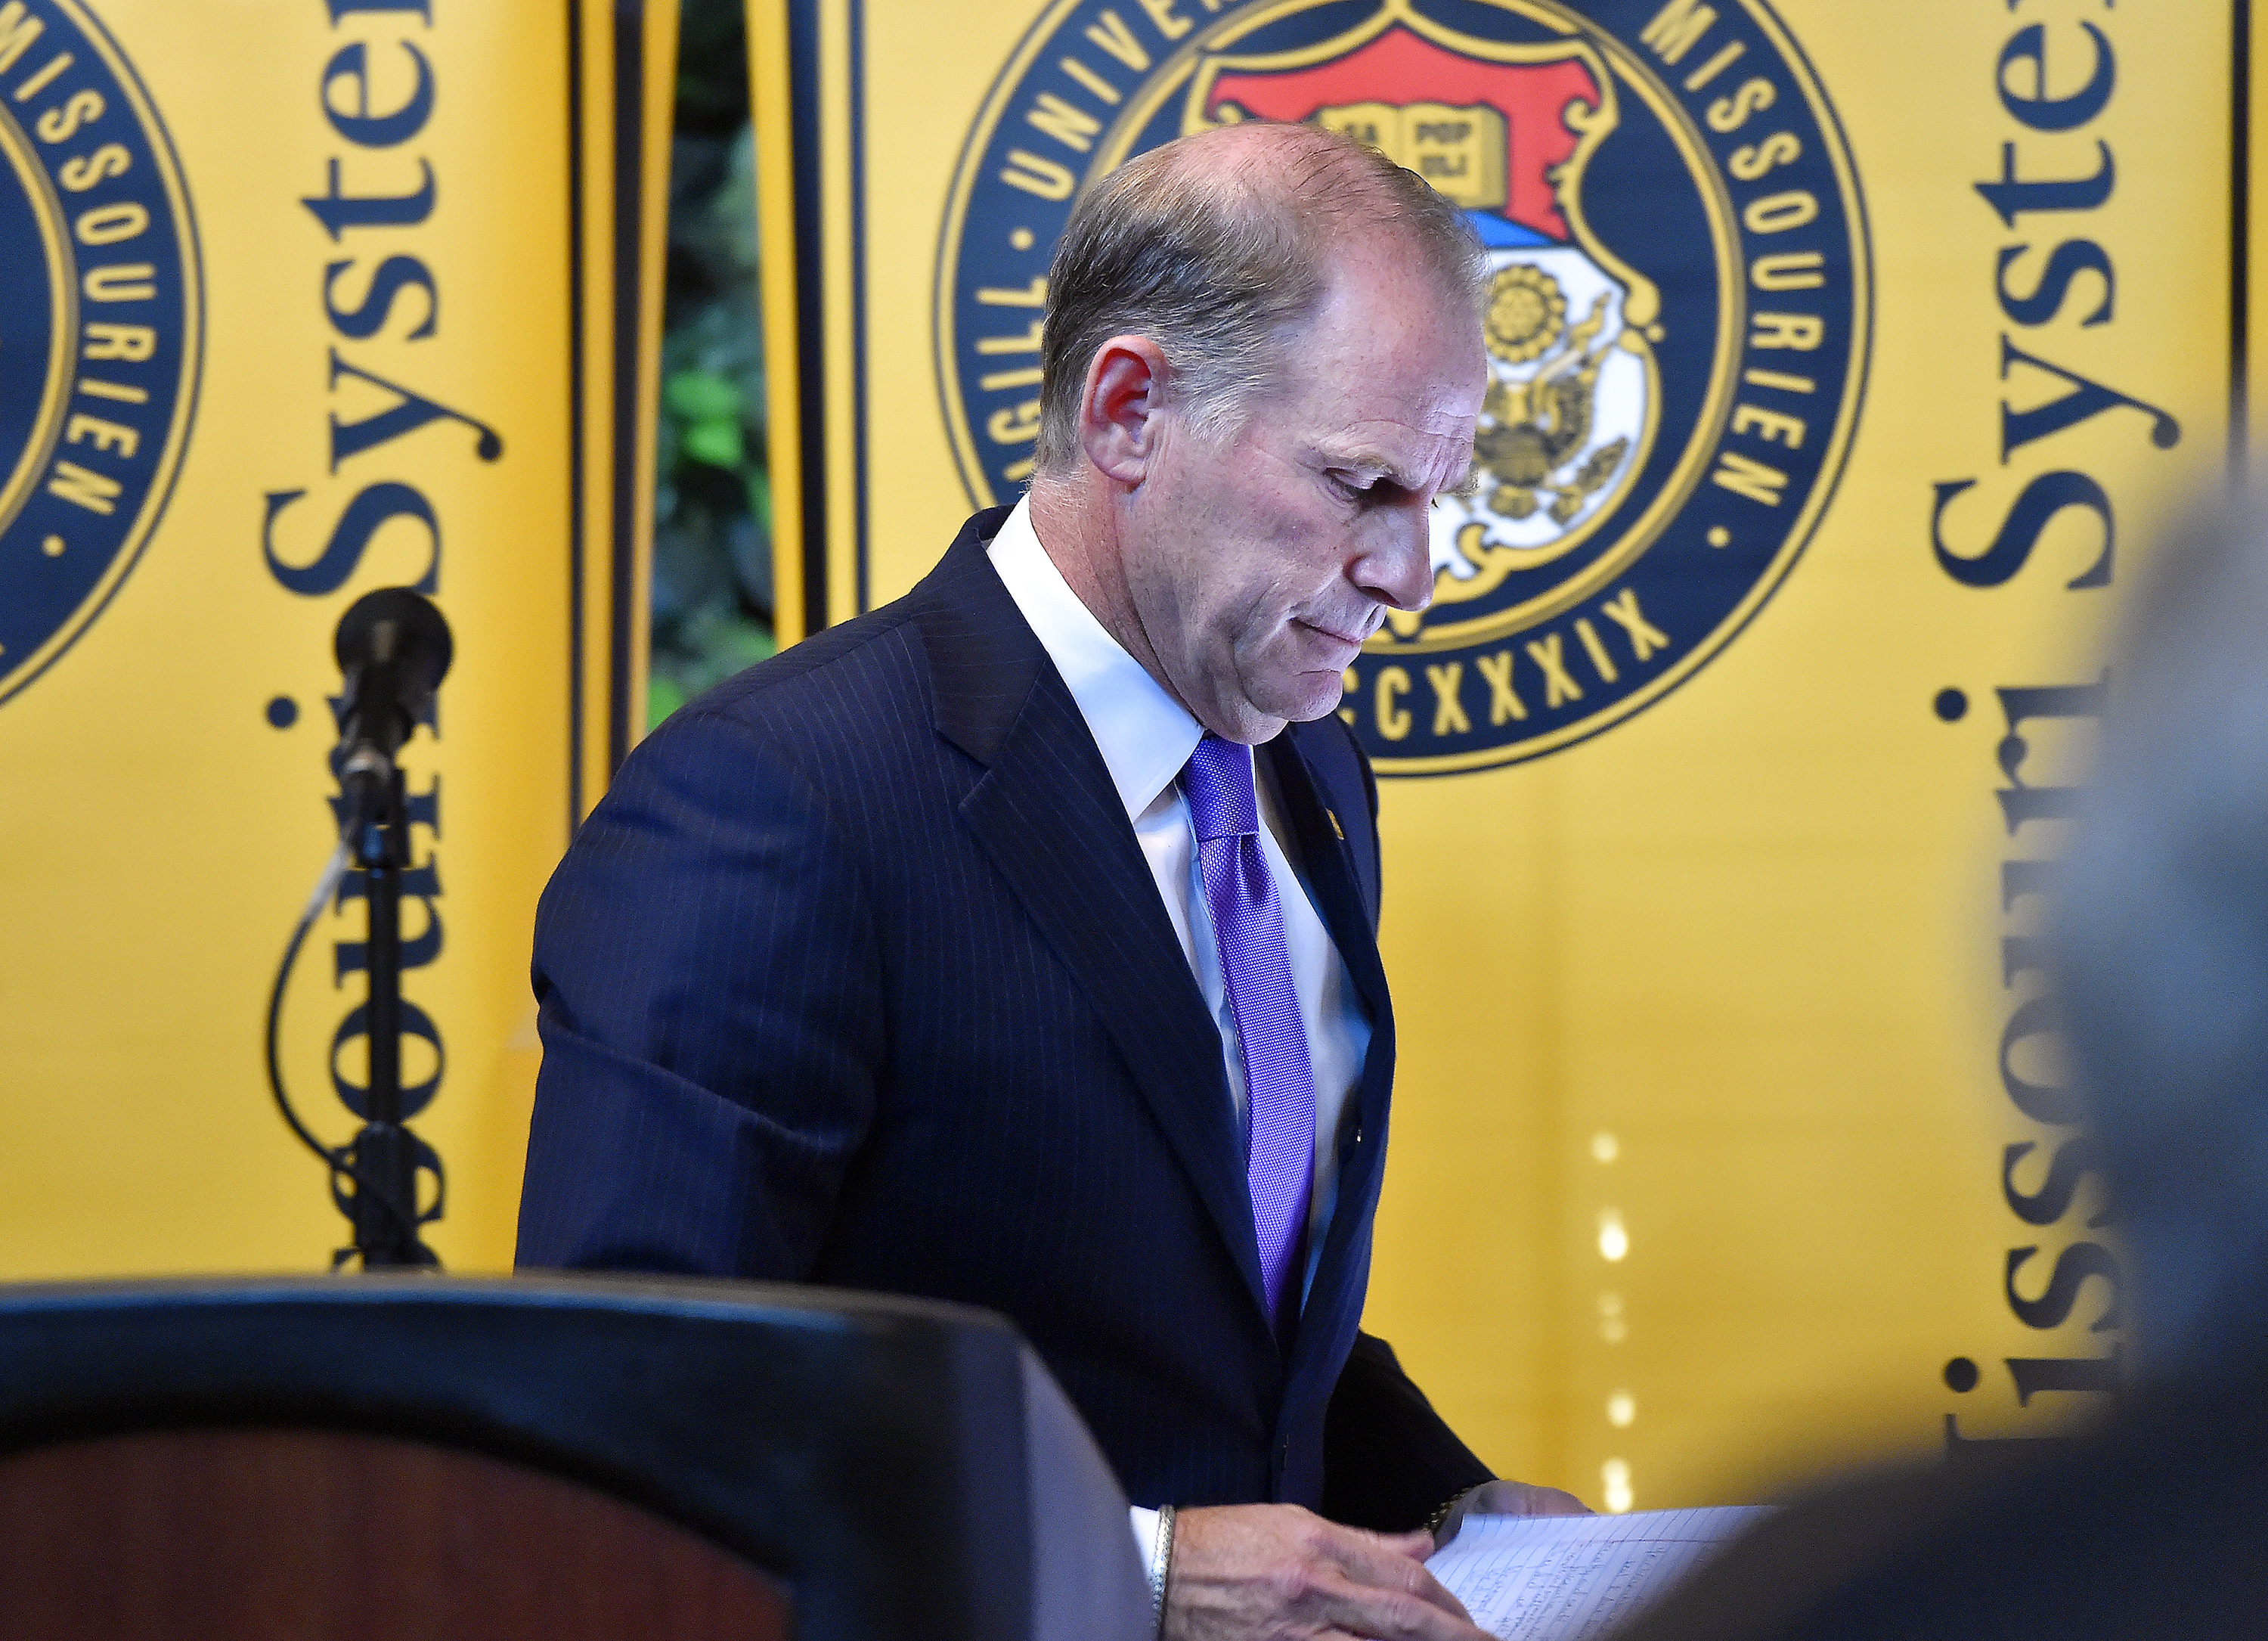 University of Missouri system President Tim Wolfe walks away from the lecturn after he announced his resignation during a news conference on Monday, Nov. 9, 2015, in Columbia, Mo. Wolfe resigned after pressure from students who say he has not done enough to respond to recent racially-motivated incidents on the Columbia campus.